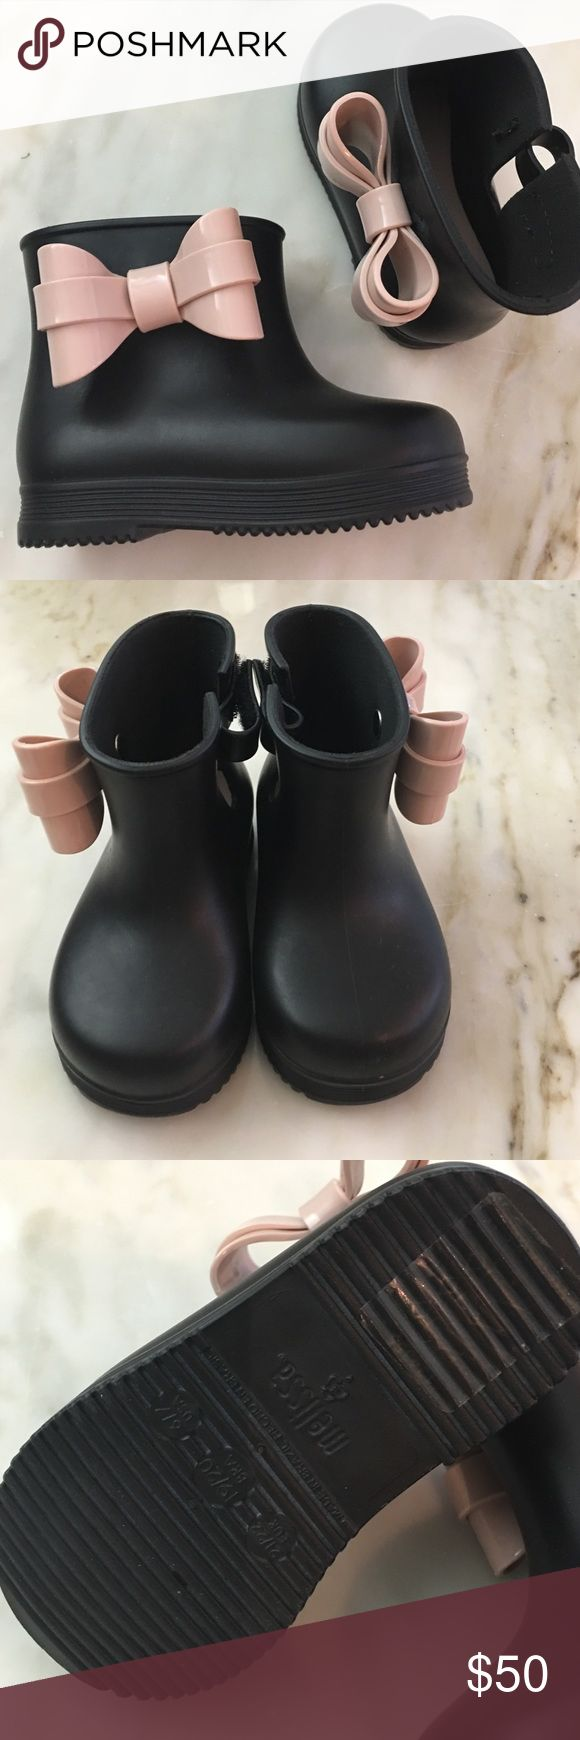 Toddler Mini Melissa boots Brand new black Mini Melissa boots with pink bows. Size 6/7. Never worn. This brand runs small. Adorable!!!!!!!! My baby outgrew before she could wear them. Selling at Saks right now for $65. Mini Melissa Shoes Boots